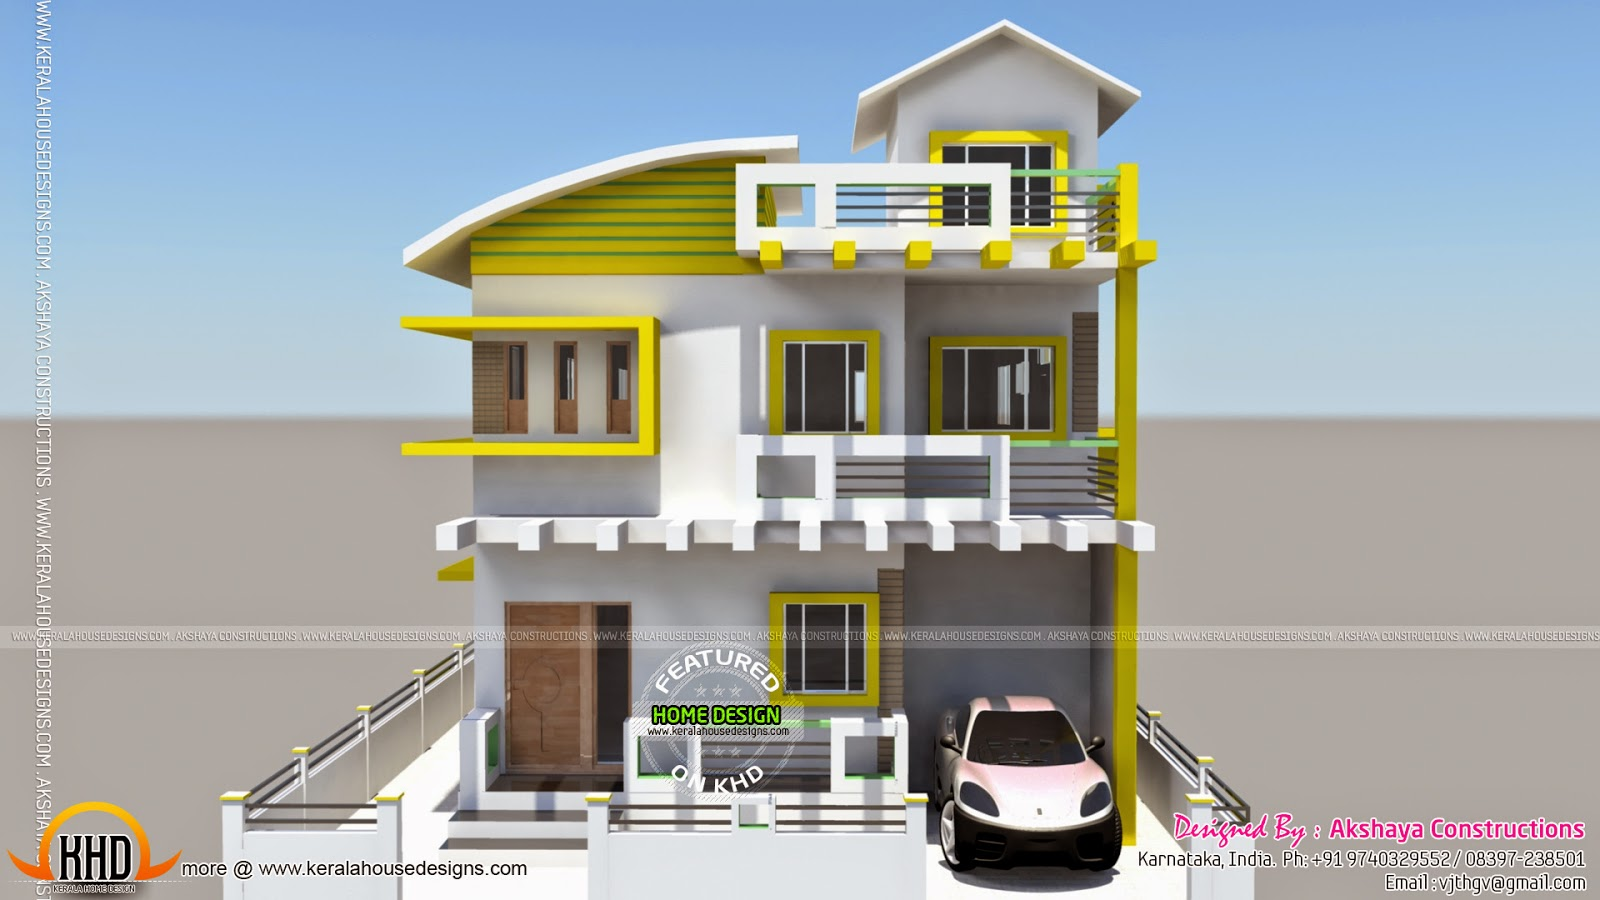 Karnataka home design kerala home design and floor plans for House design images